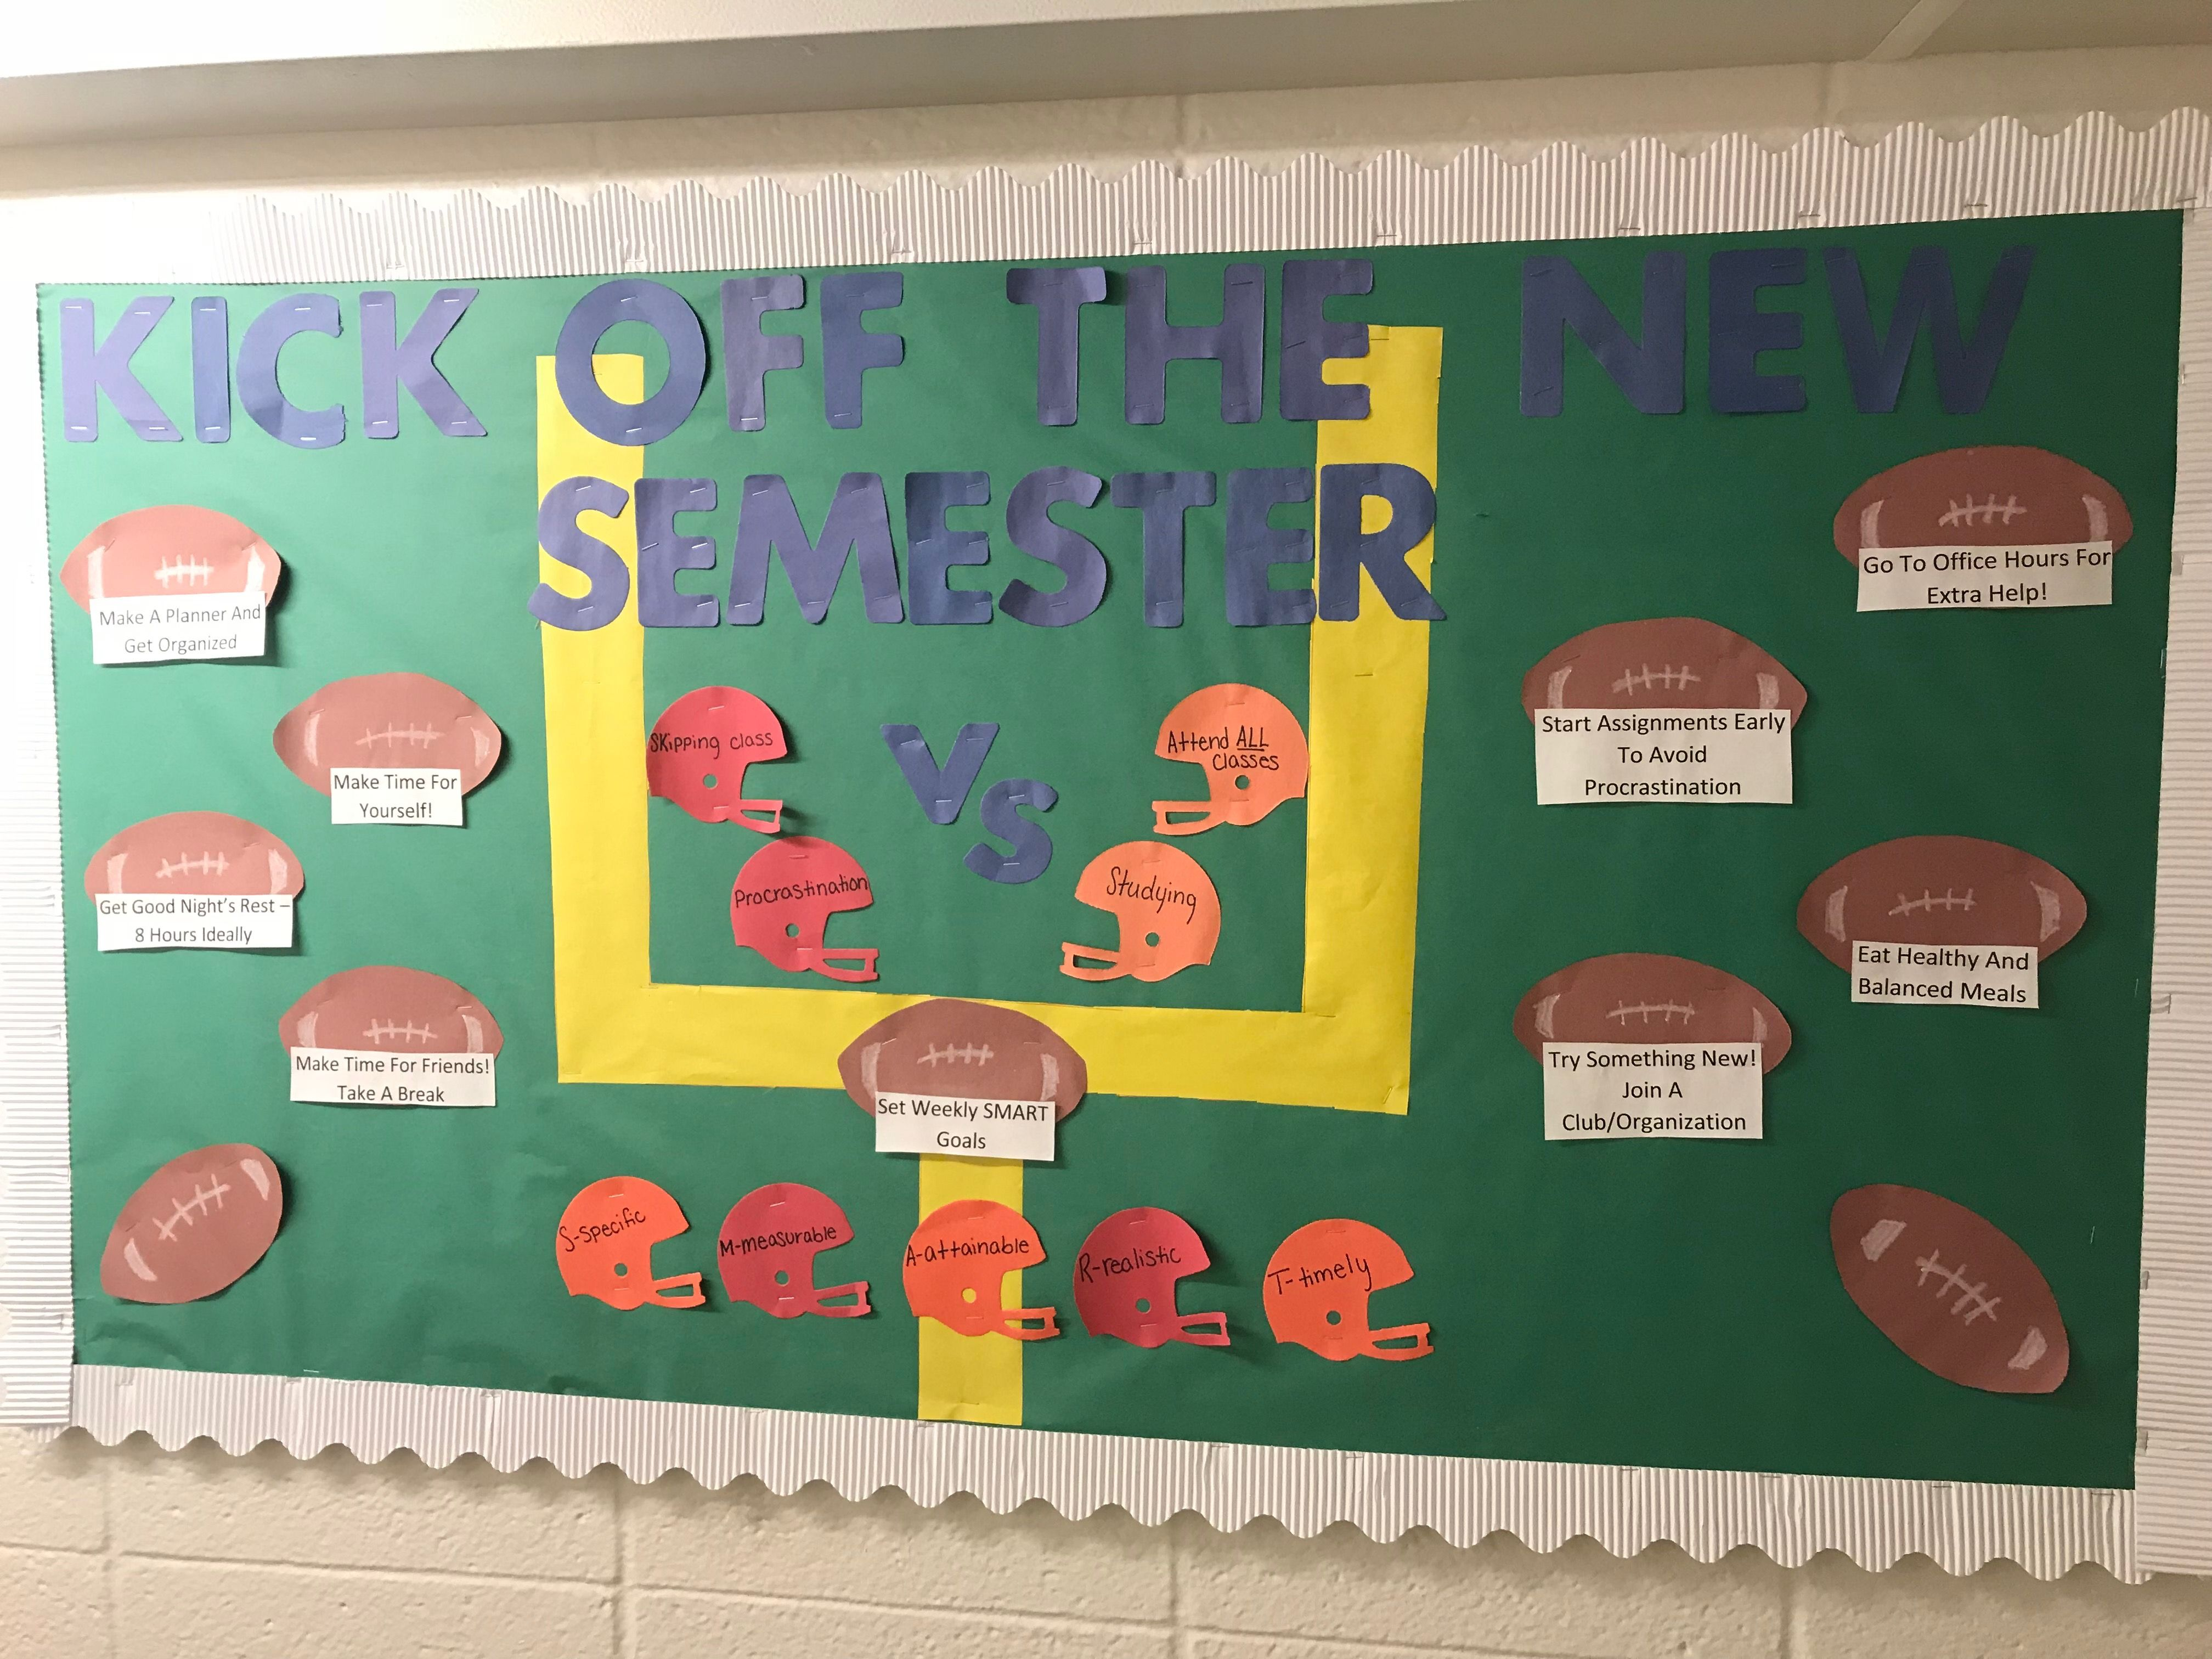 Kick off the new semester resident assistant bulletin